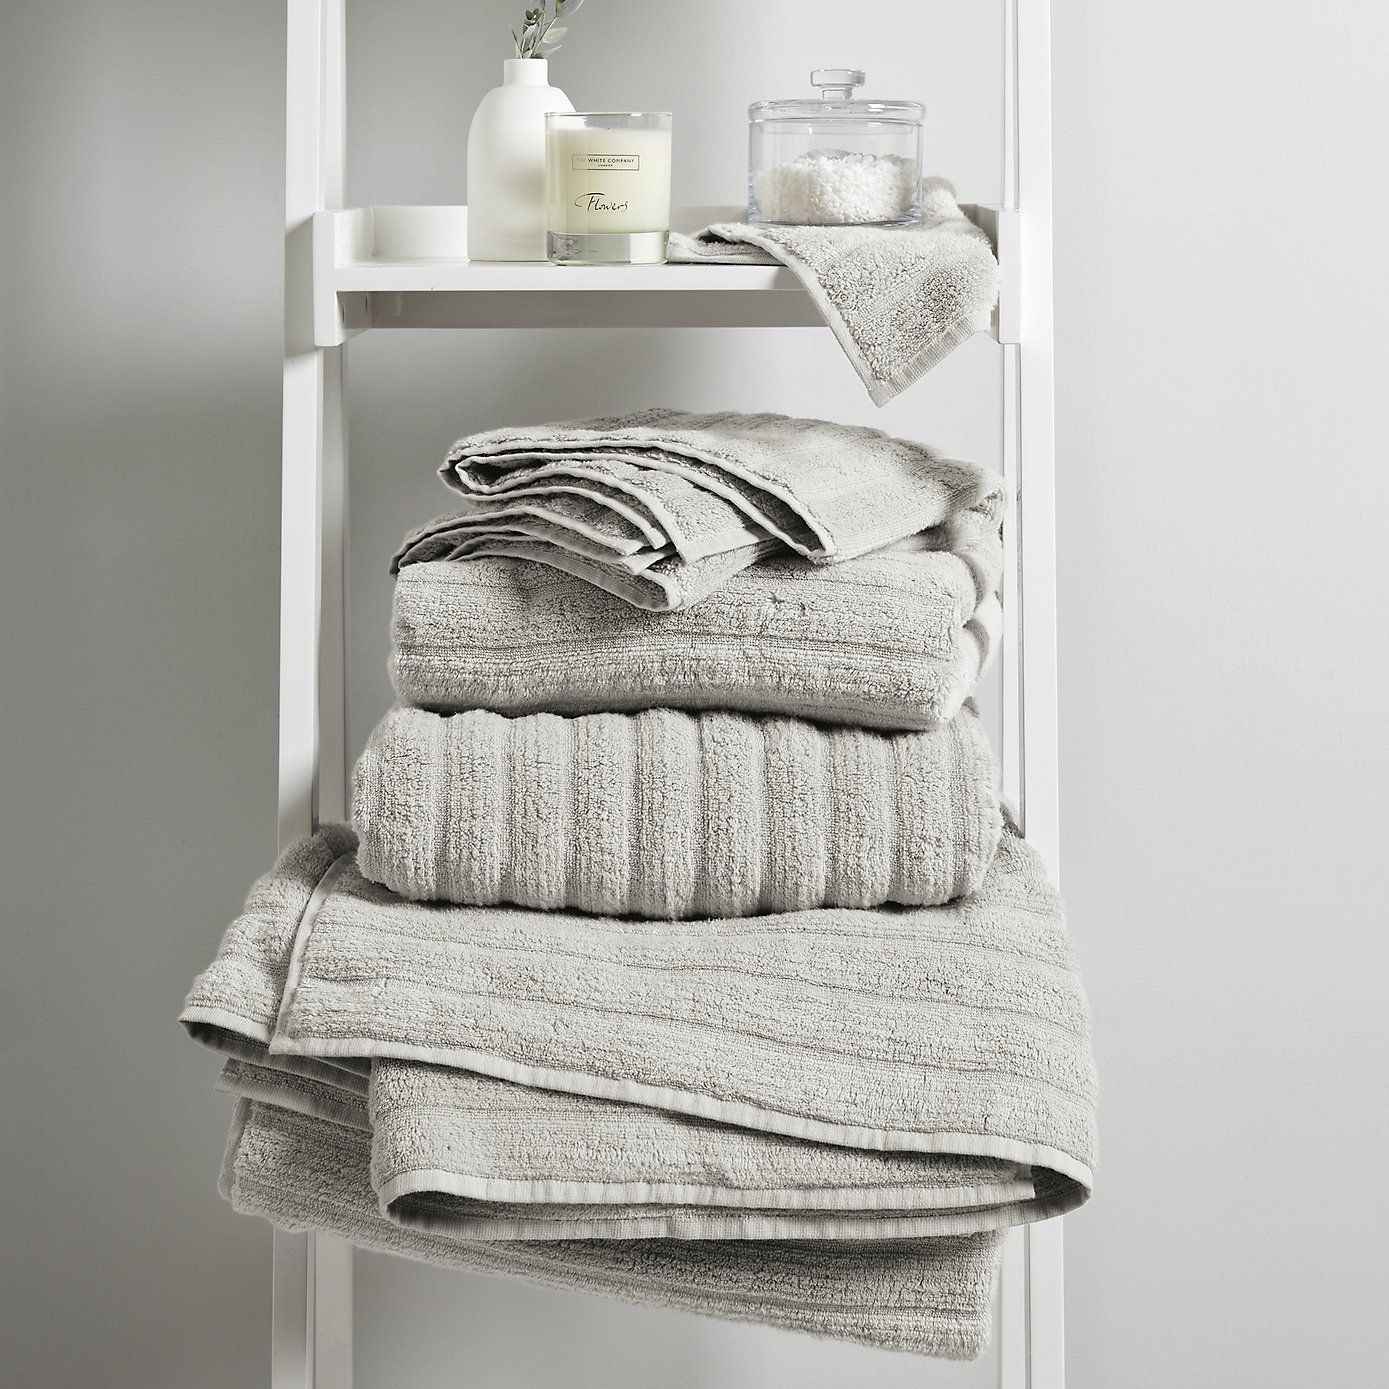 Hydrocotton Bath Towels Simple Hydrocotton Towels  White Company Towels And Bungalow Decorating Design